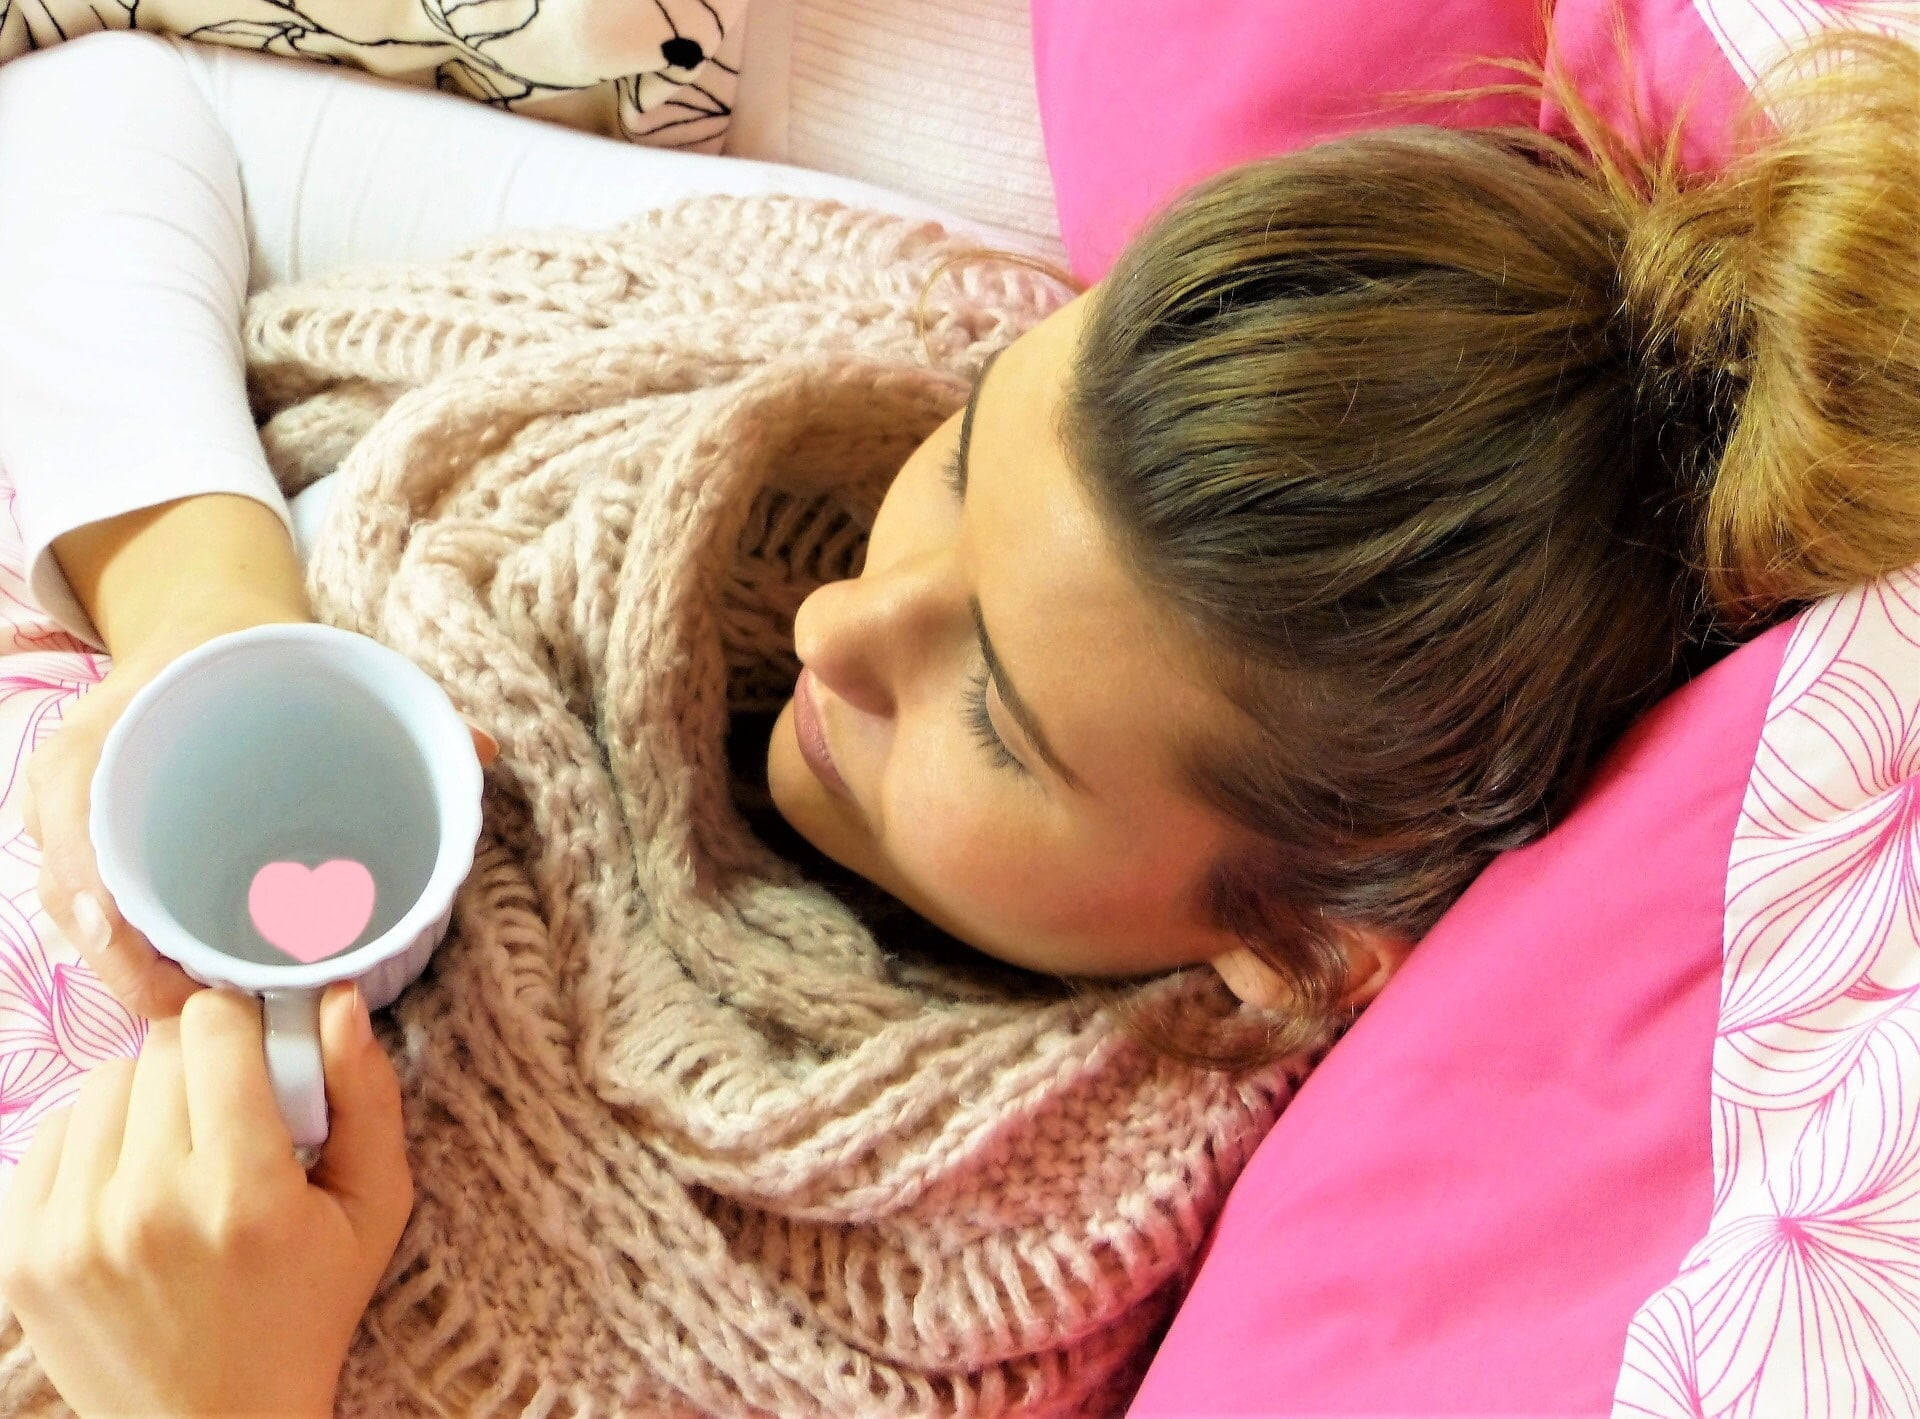 woman drinking a cup of tea from a heart cup